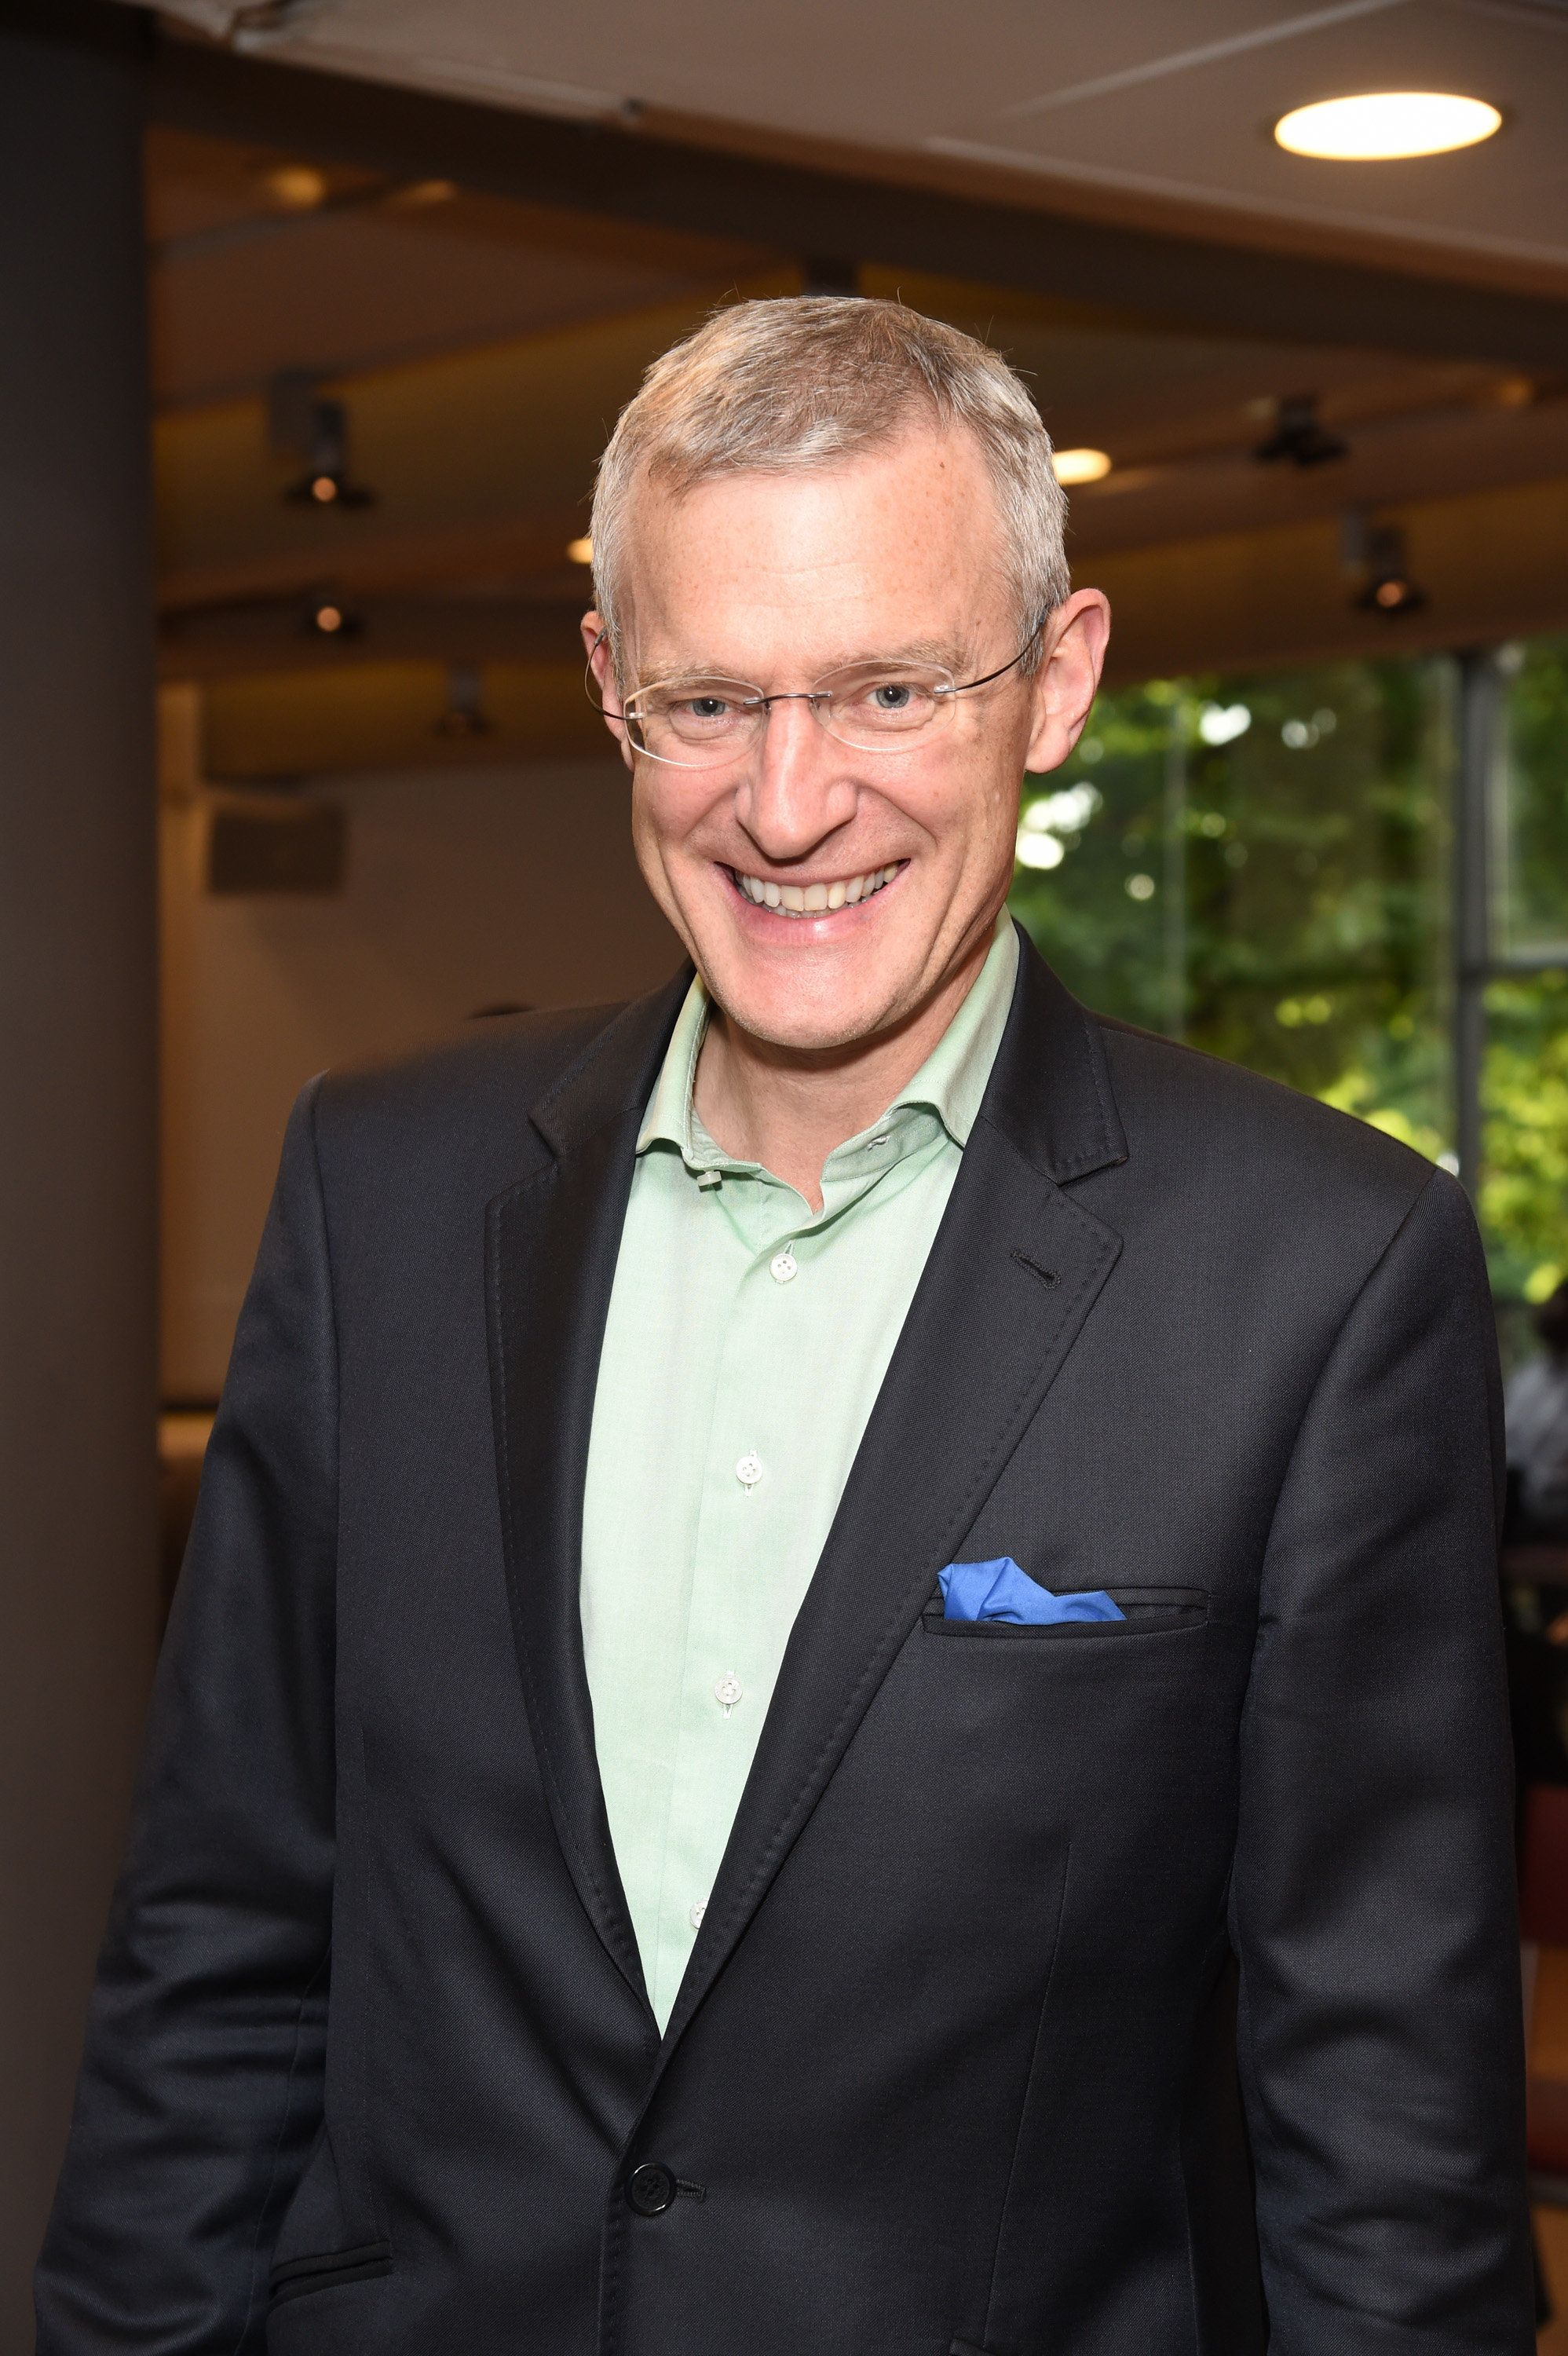 Jeremy Vine On 'Strictly' Negativity And How His Kids (And Listeners!) Keep Him